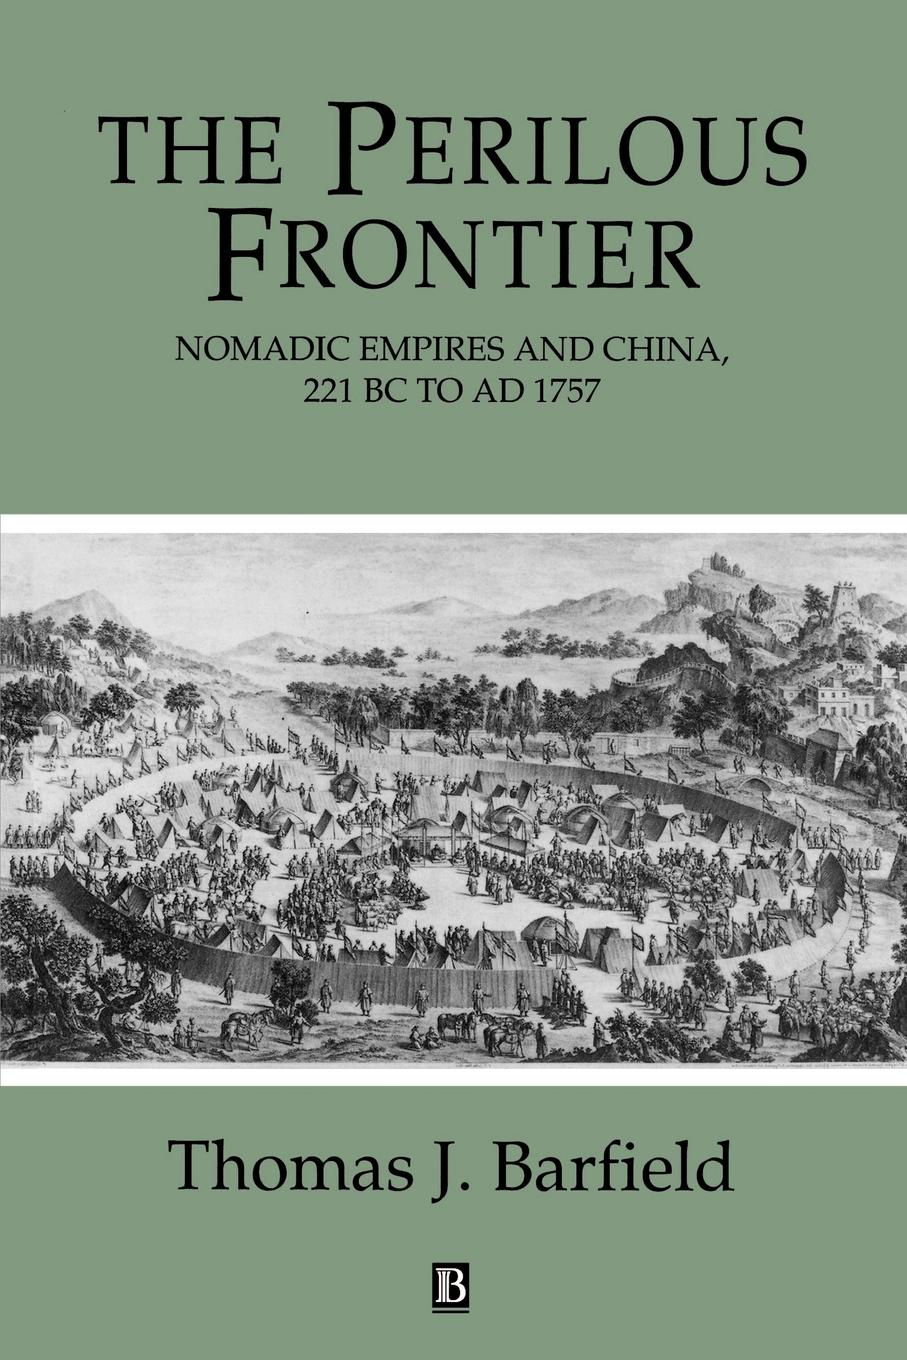 Thomas J. Barfield The Perilous Frontier. Nomadic Empires and China